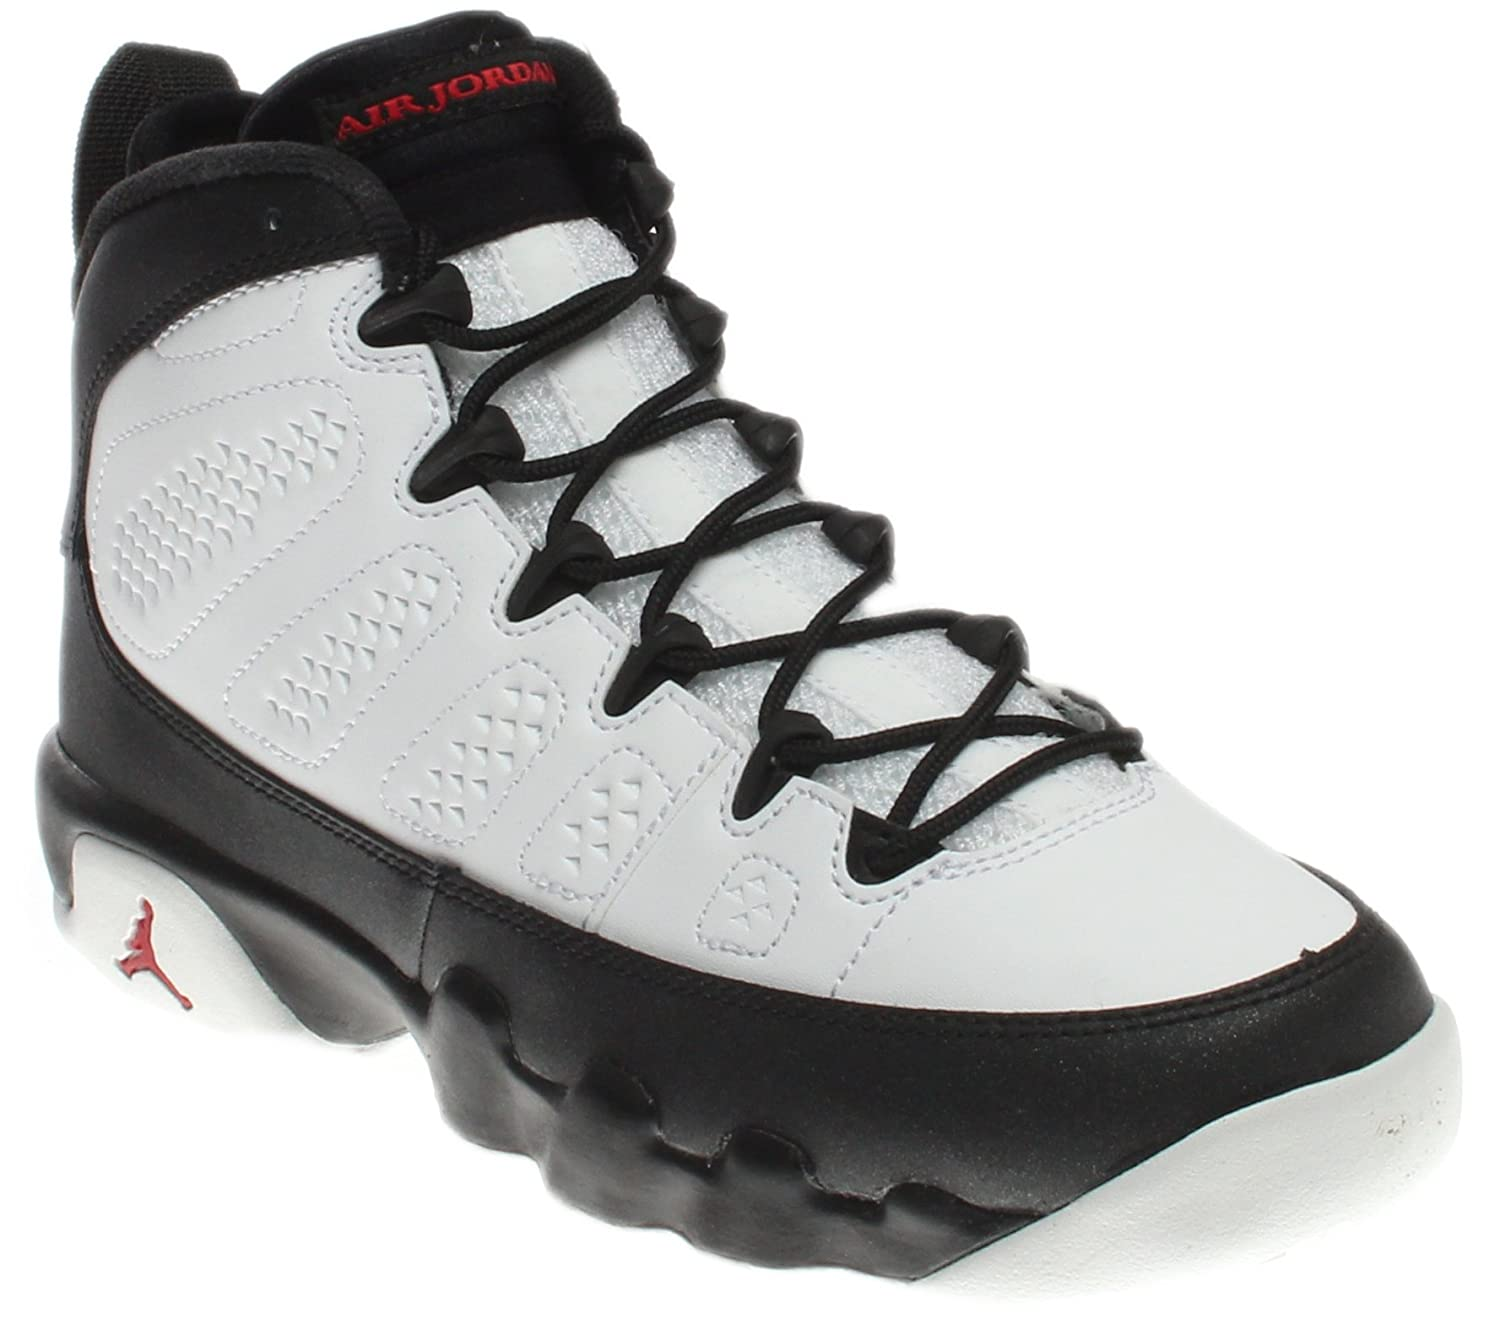 on sale d5988 1e645 Nike AIR Jordan 9 Retro BG (GS)  Space JAM  - 302359-112  Amazon.ca  Shoes    Handbags